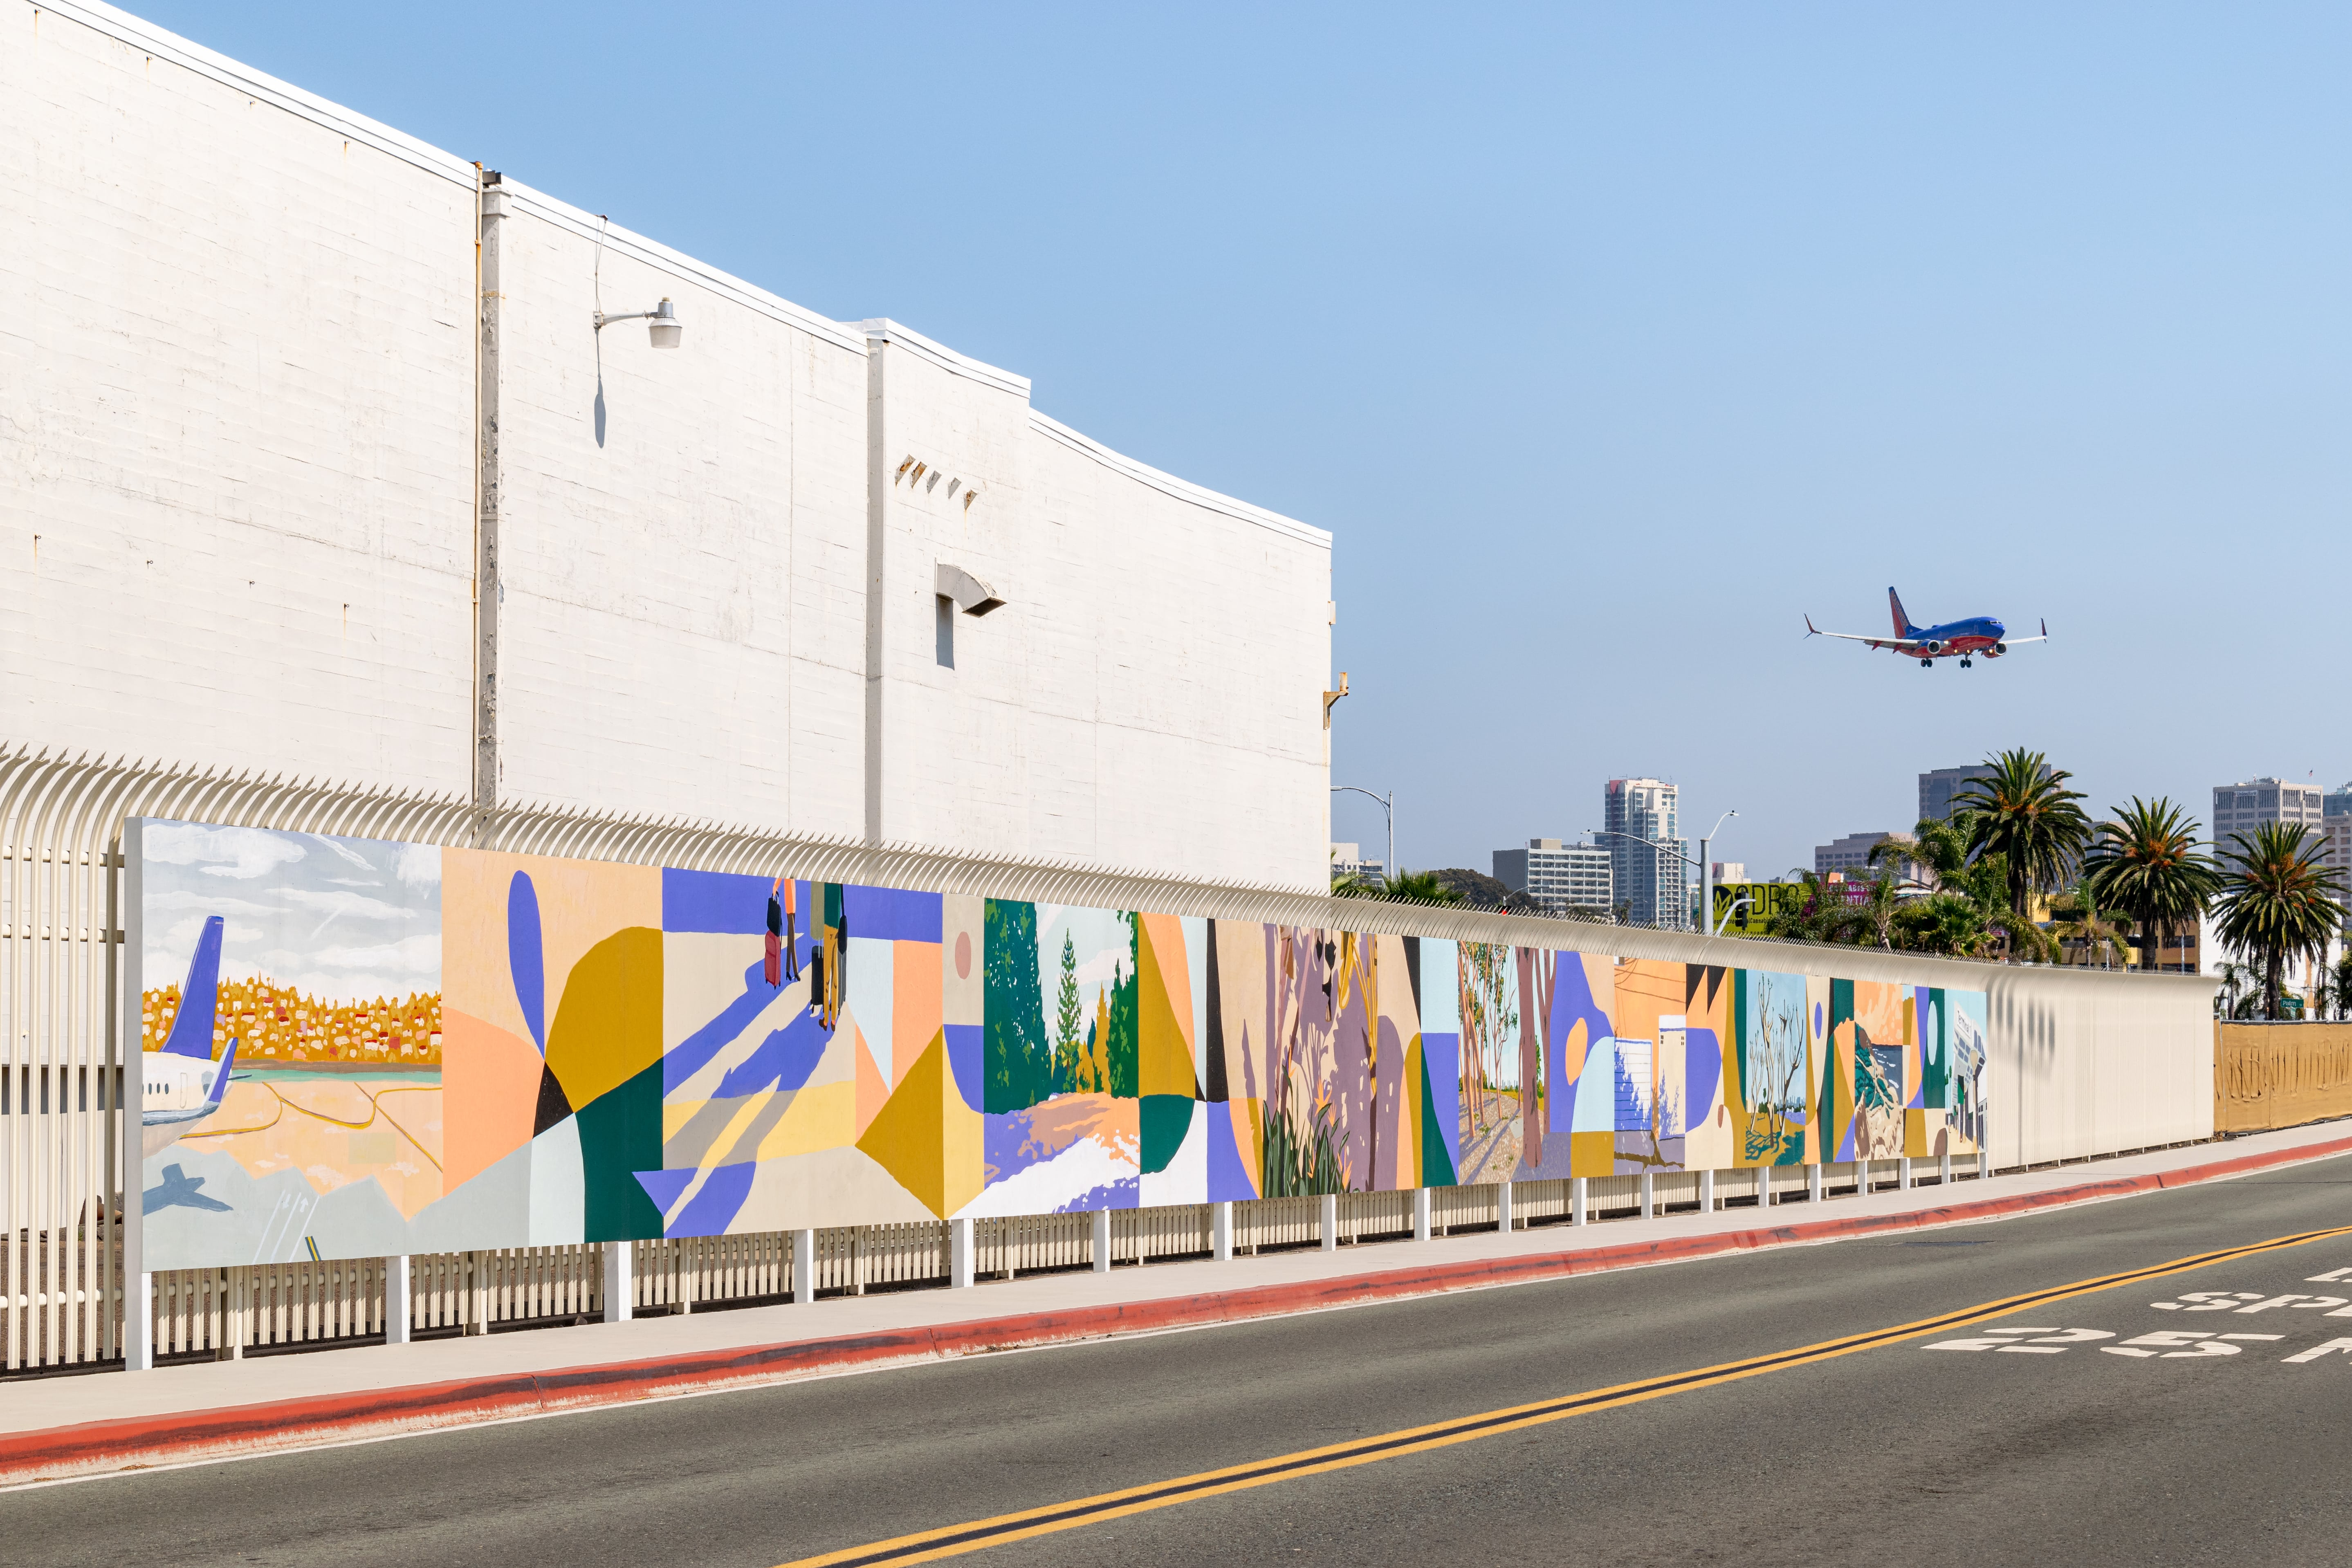 SAN Arts Program Welcomes Fall Performing Arts Resident & Debuts New Mural on Admiral Boland Way